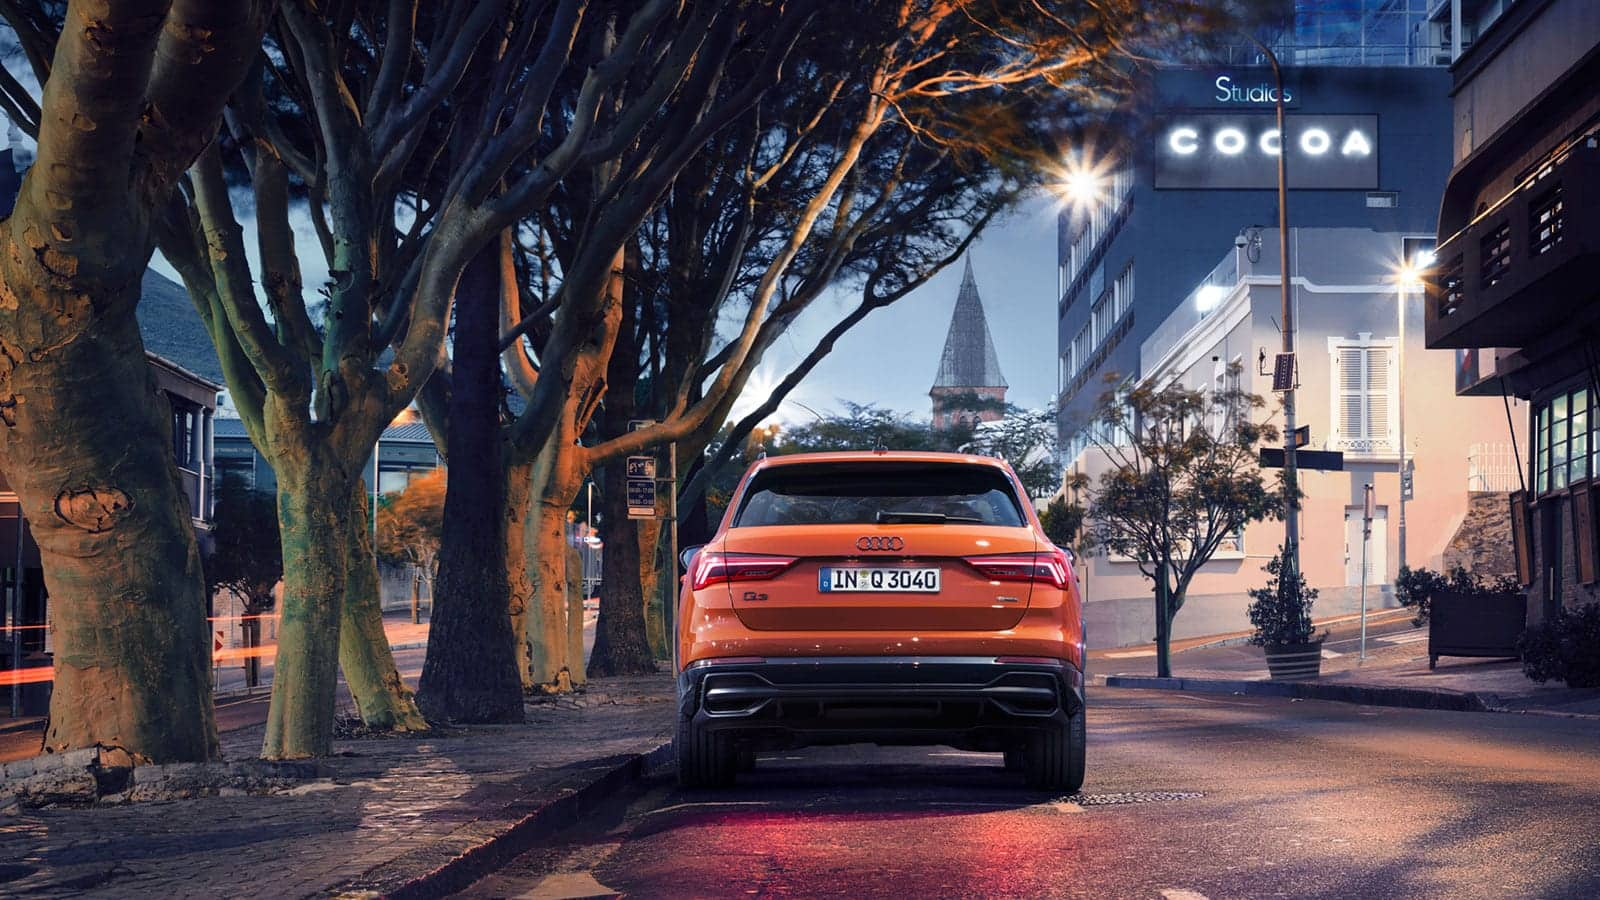 Even more sportiness. the Audi Q3 special edition